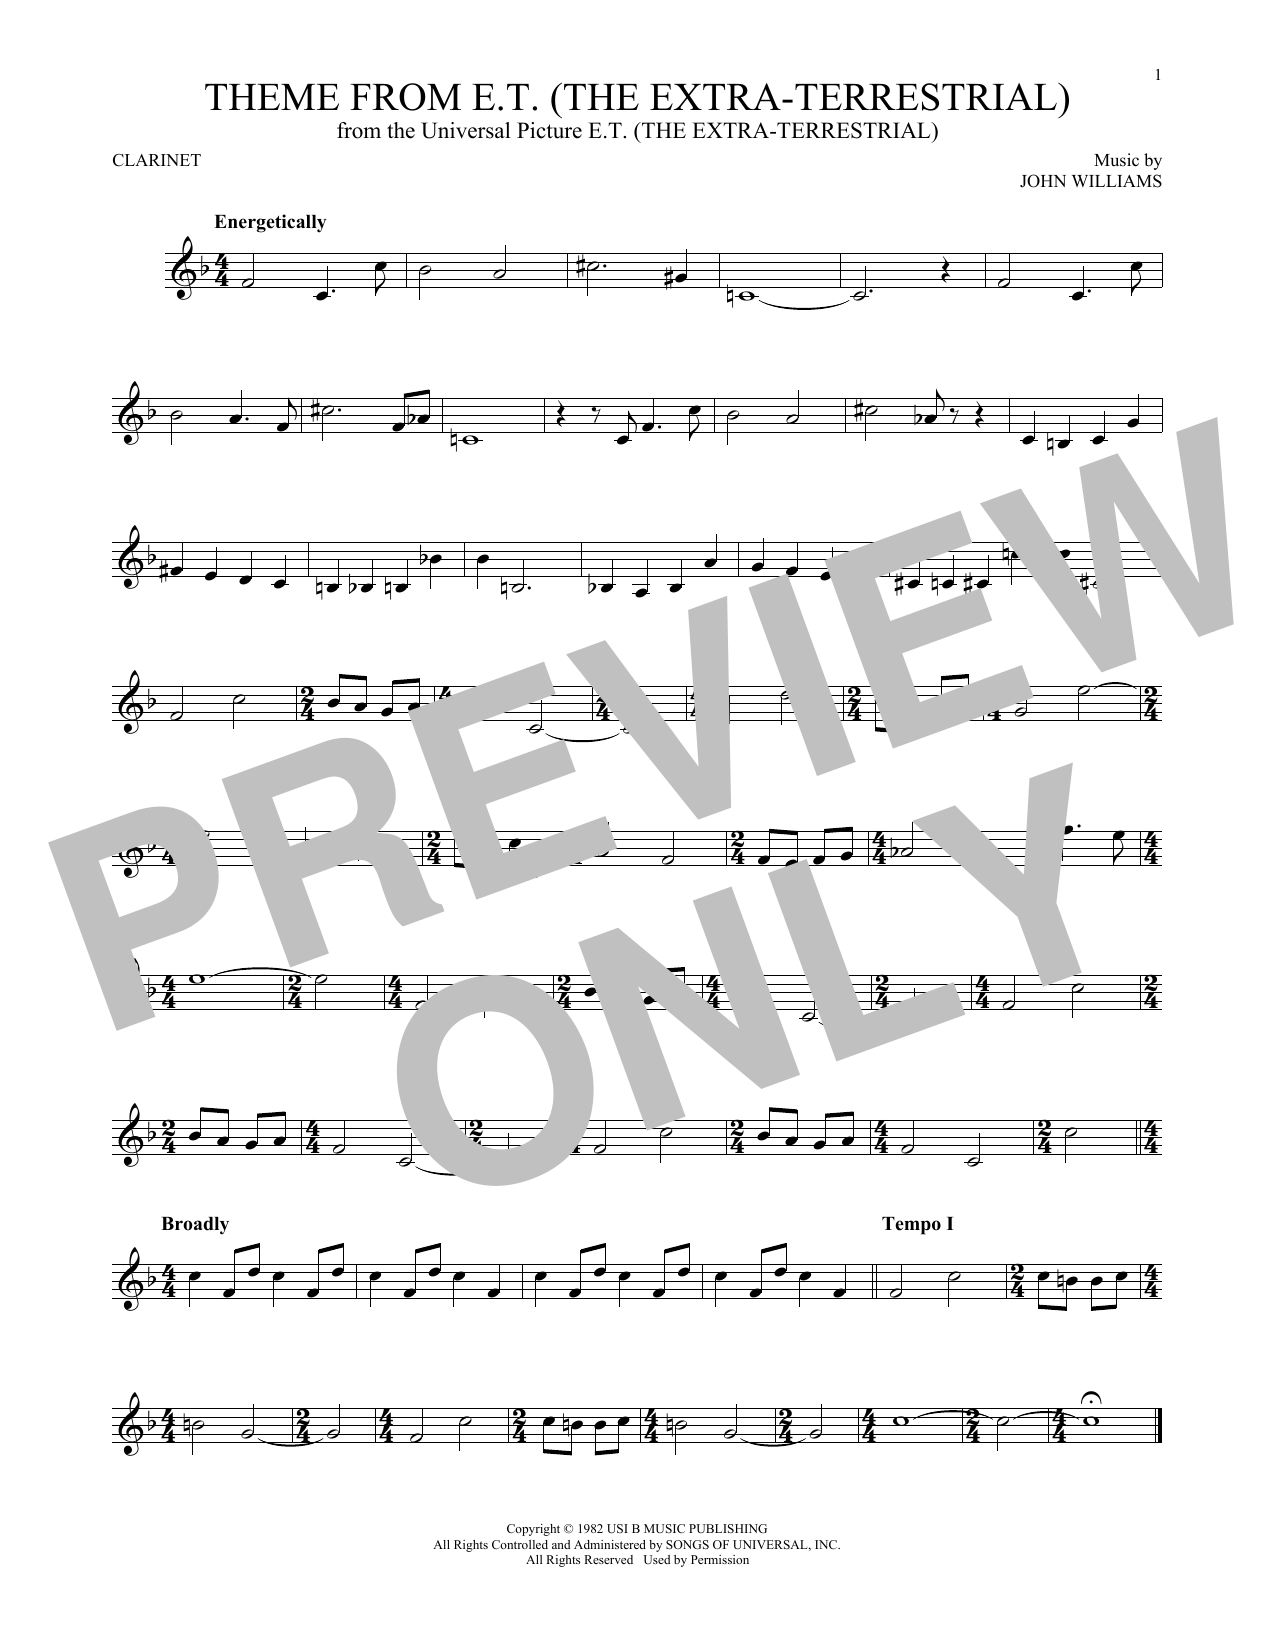 Theme From E.T. (The Extra-Terrestrial) (Clarinet Solo)